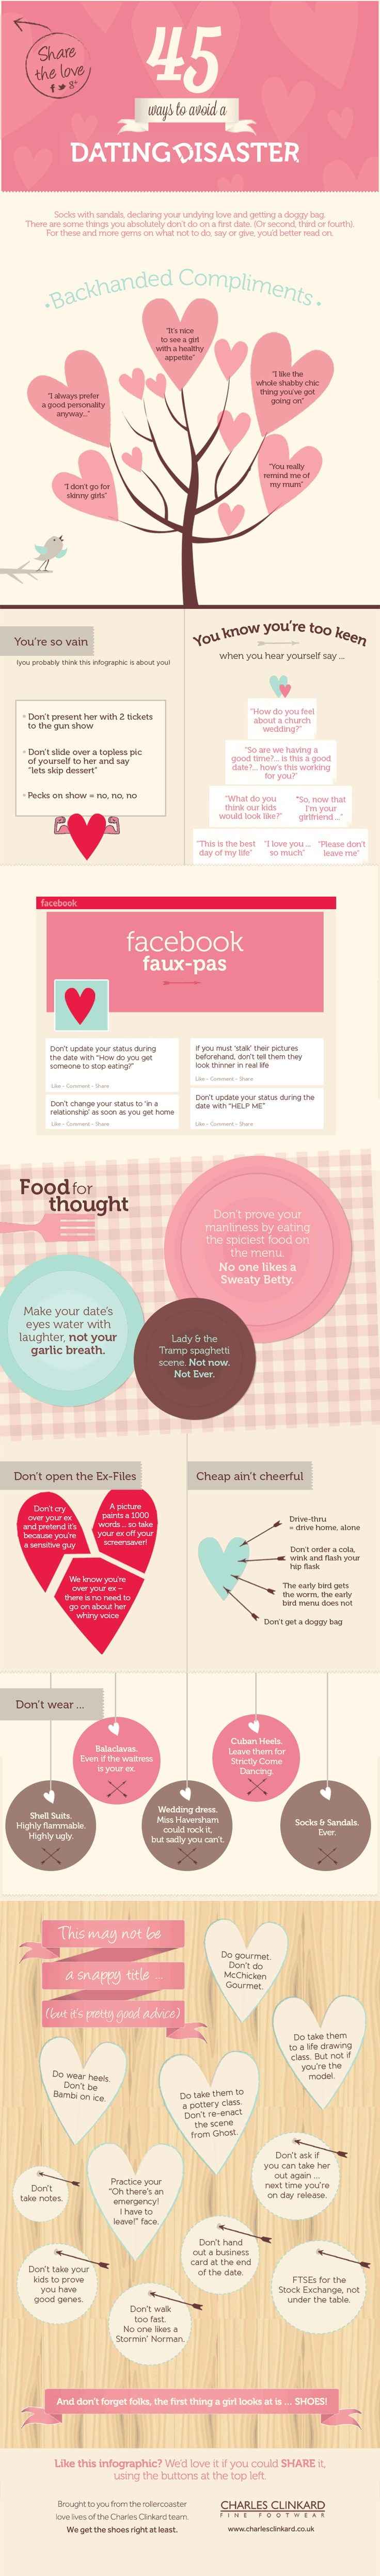 ways to avoid a dating disaster infographic http   www twosugars  Infographics RelationshipsInfographics